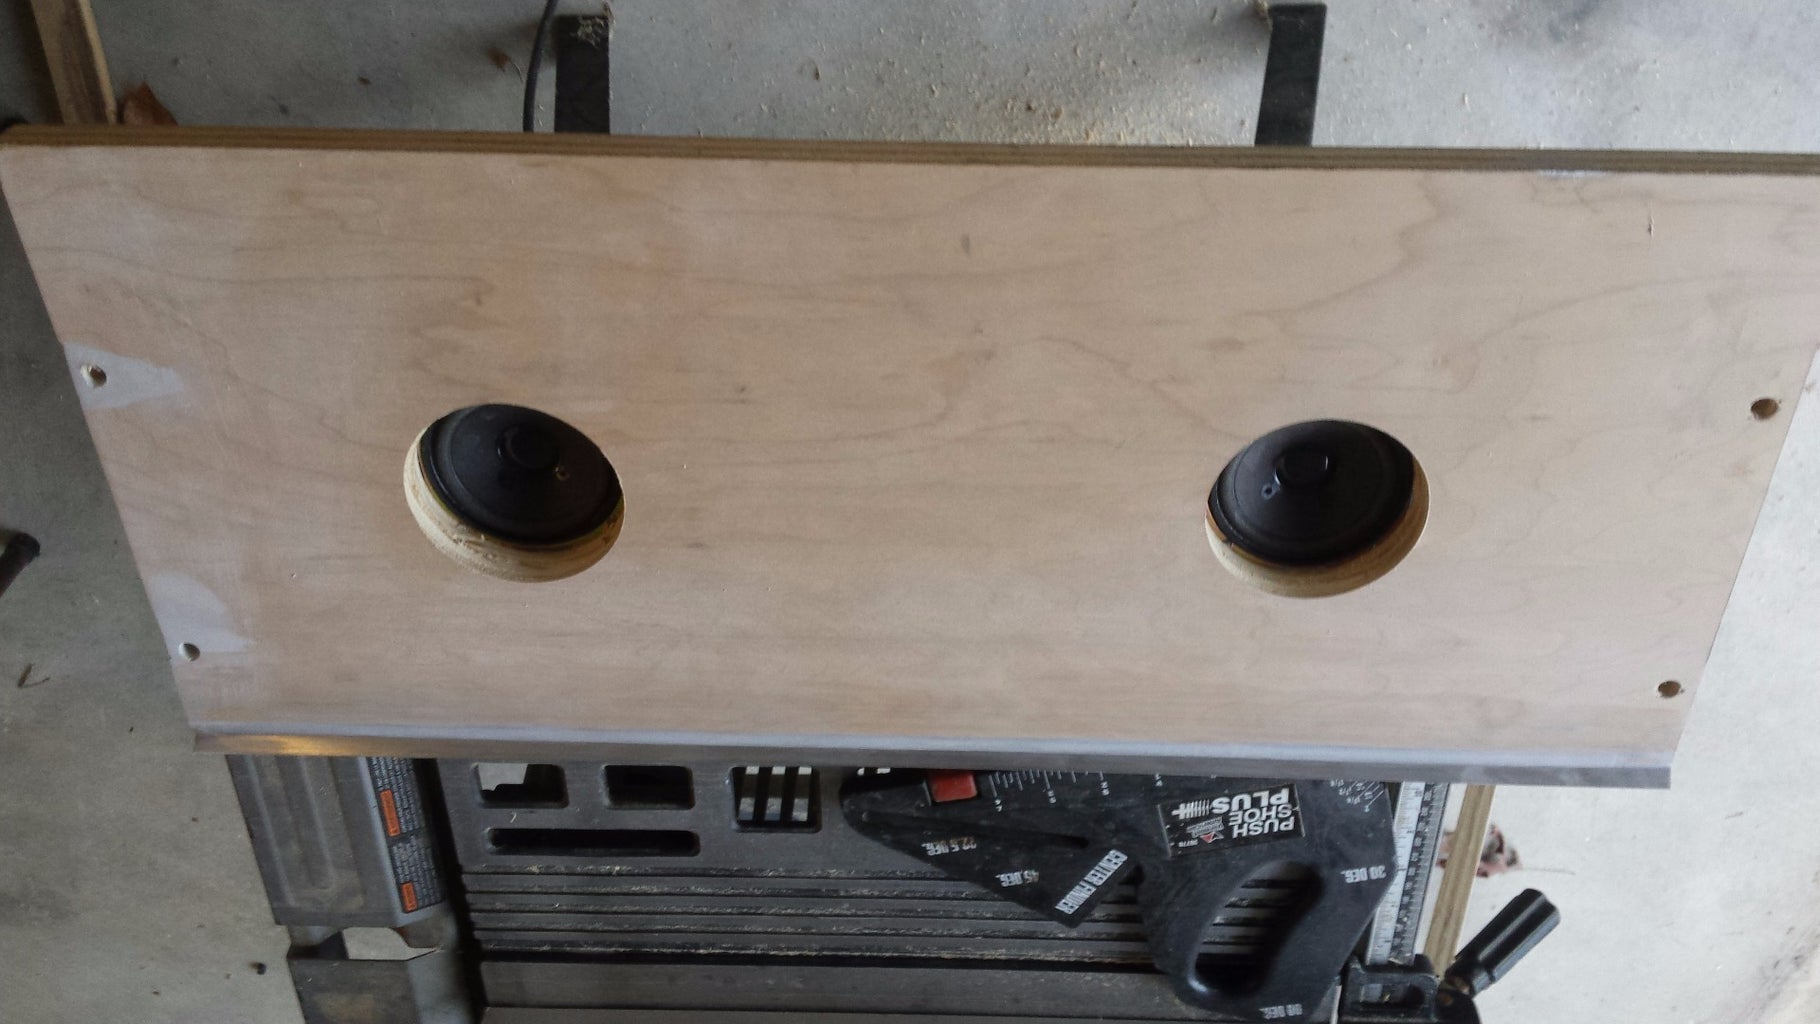 Cut Out the Front Speaker Panel